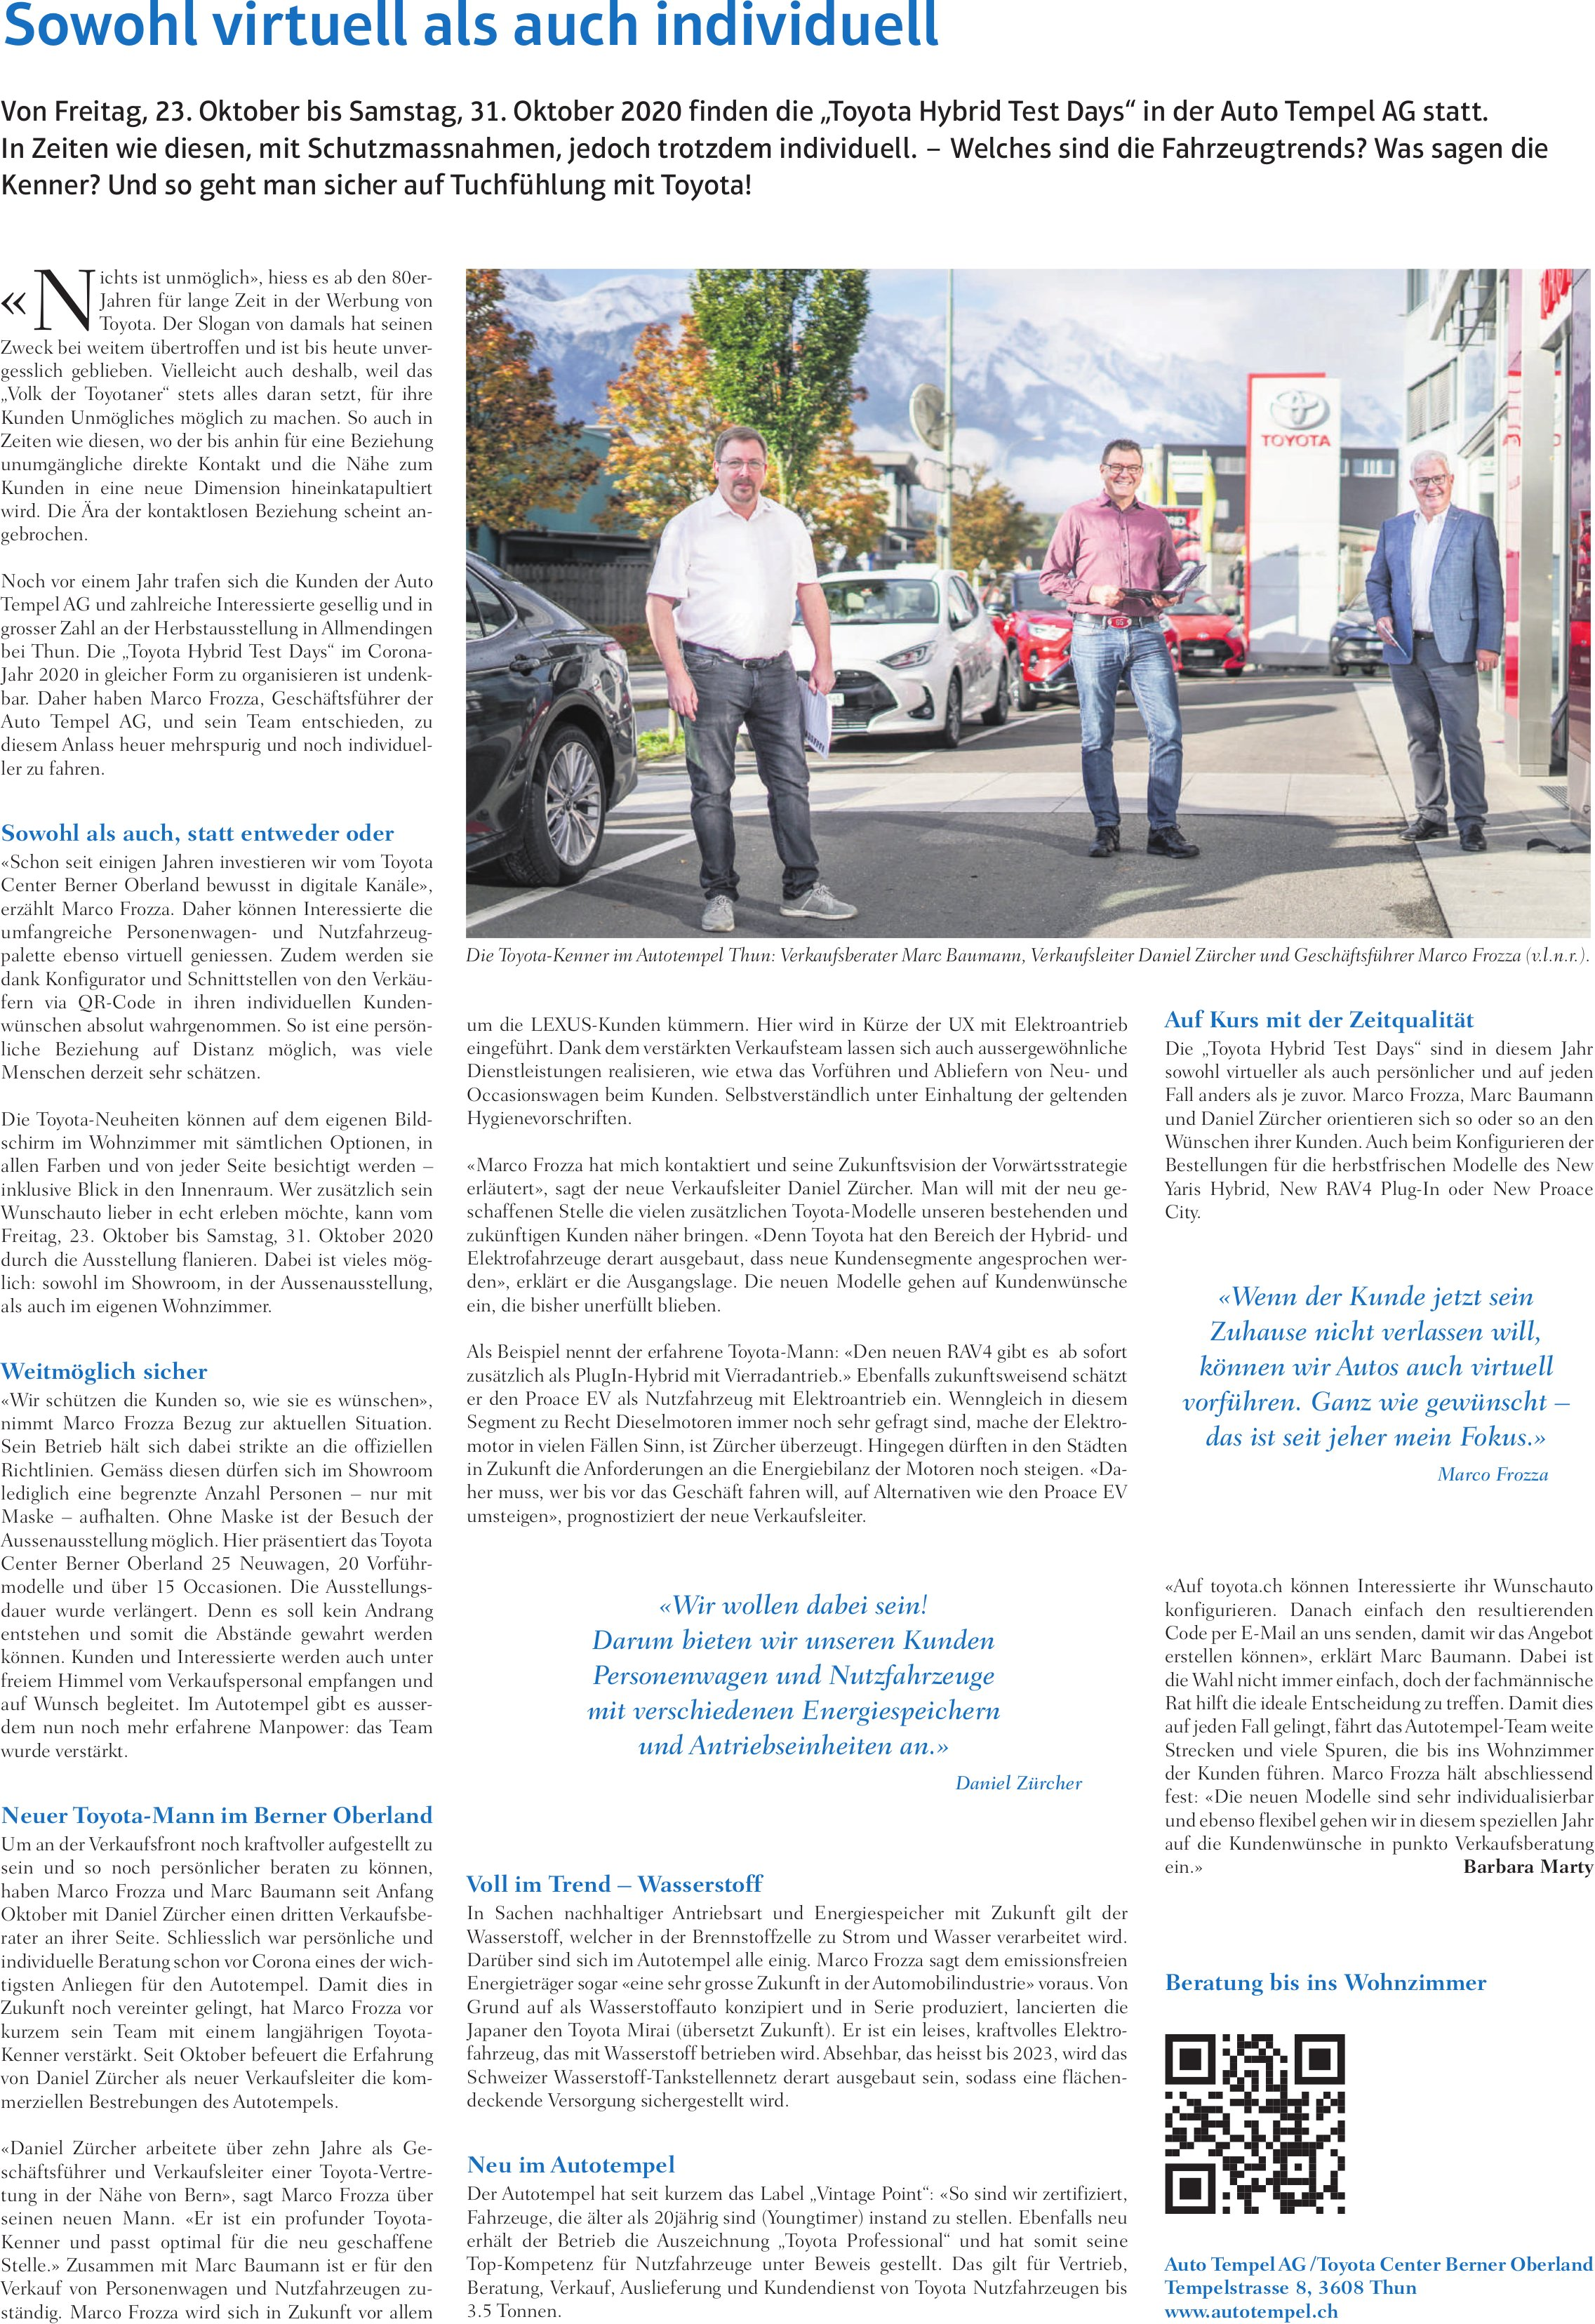 Autotempel AG, Thun - Sowohl virtuell als auch individuell